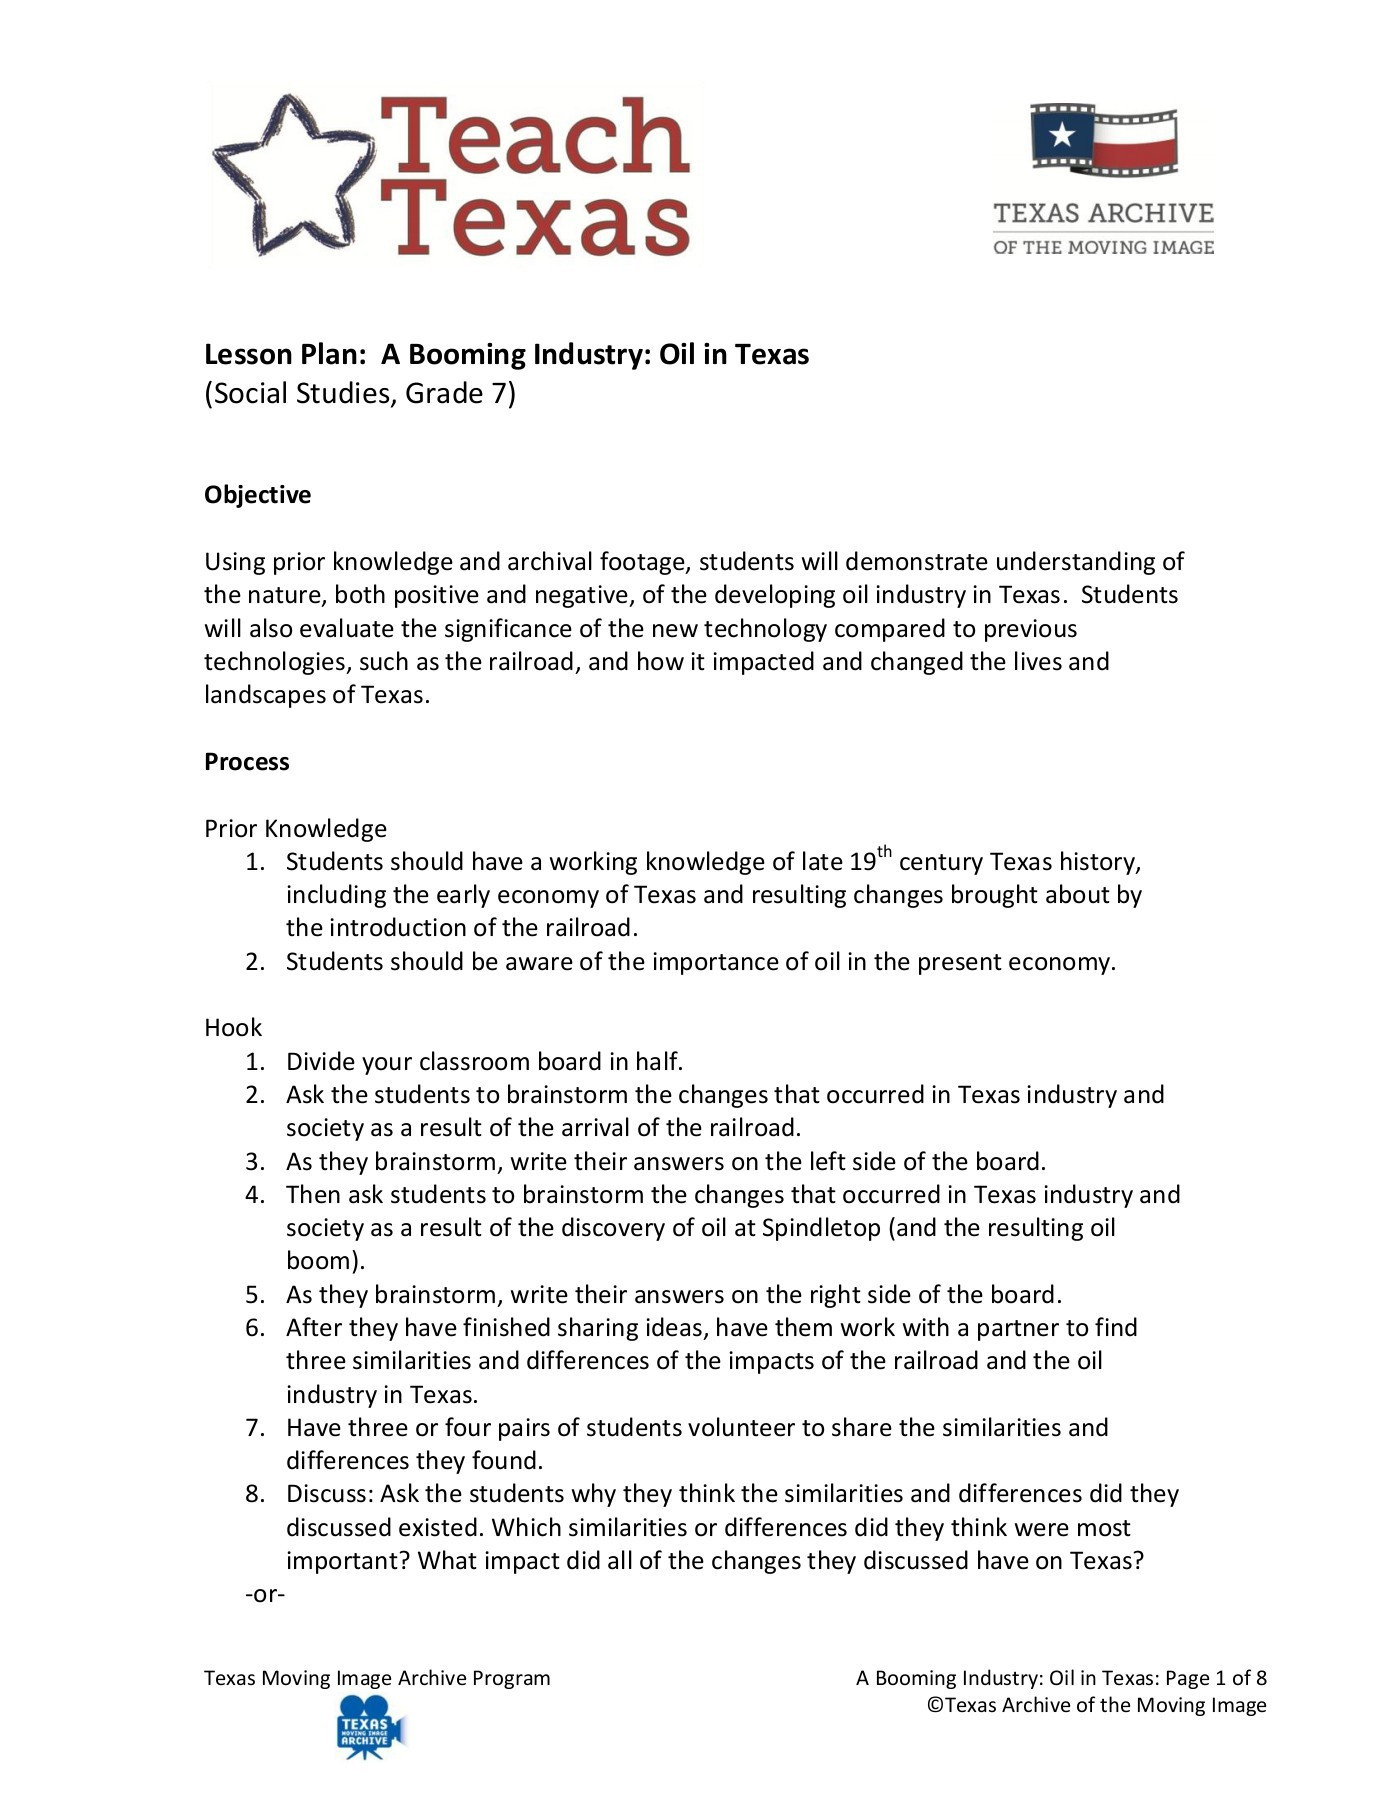 7th Grade Texas History Worksheets Lesson Plan A Booming Industry Oil In Texas social